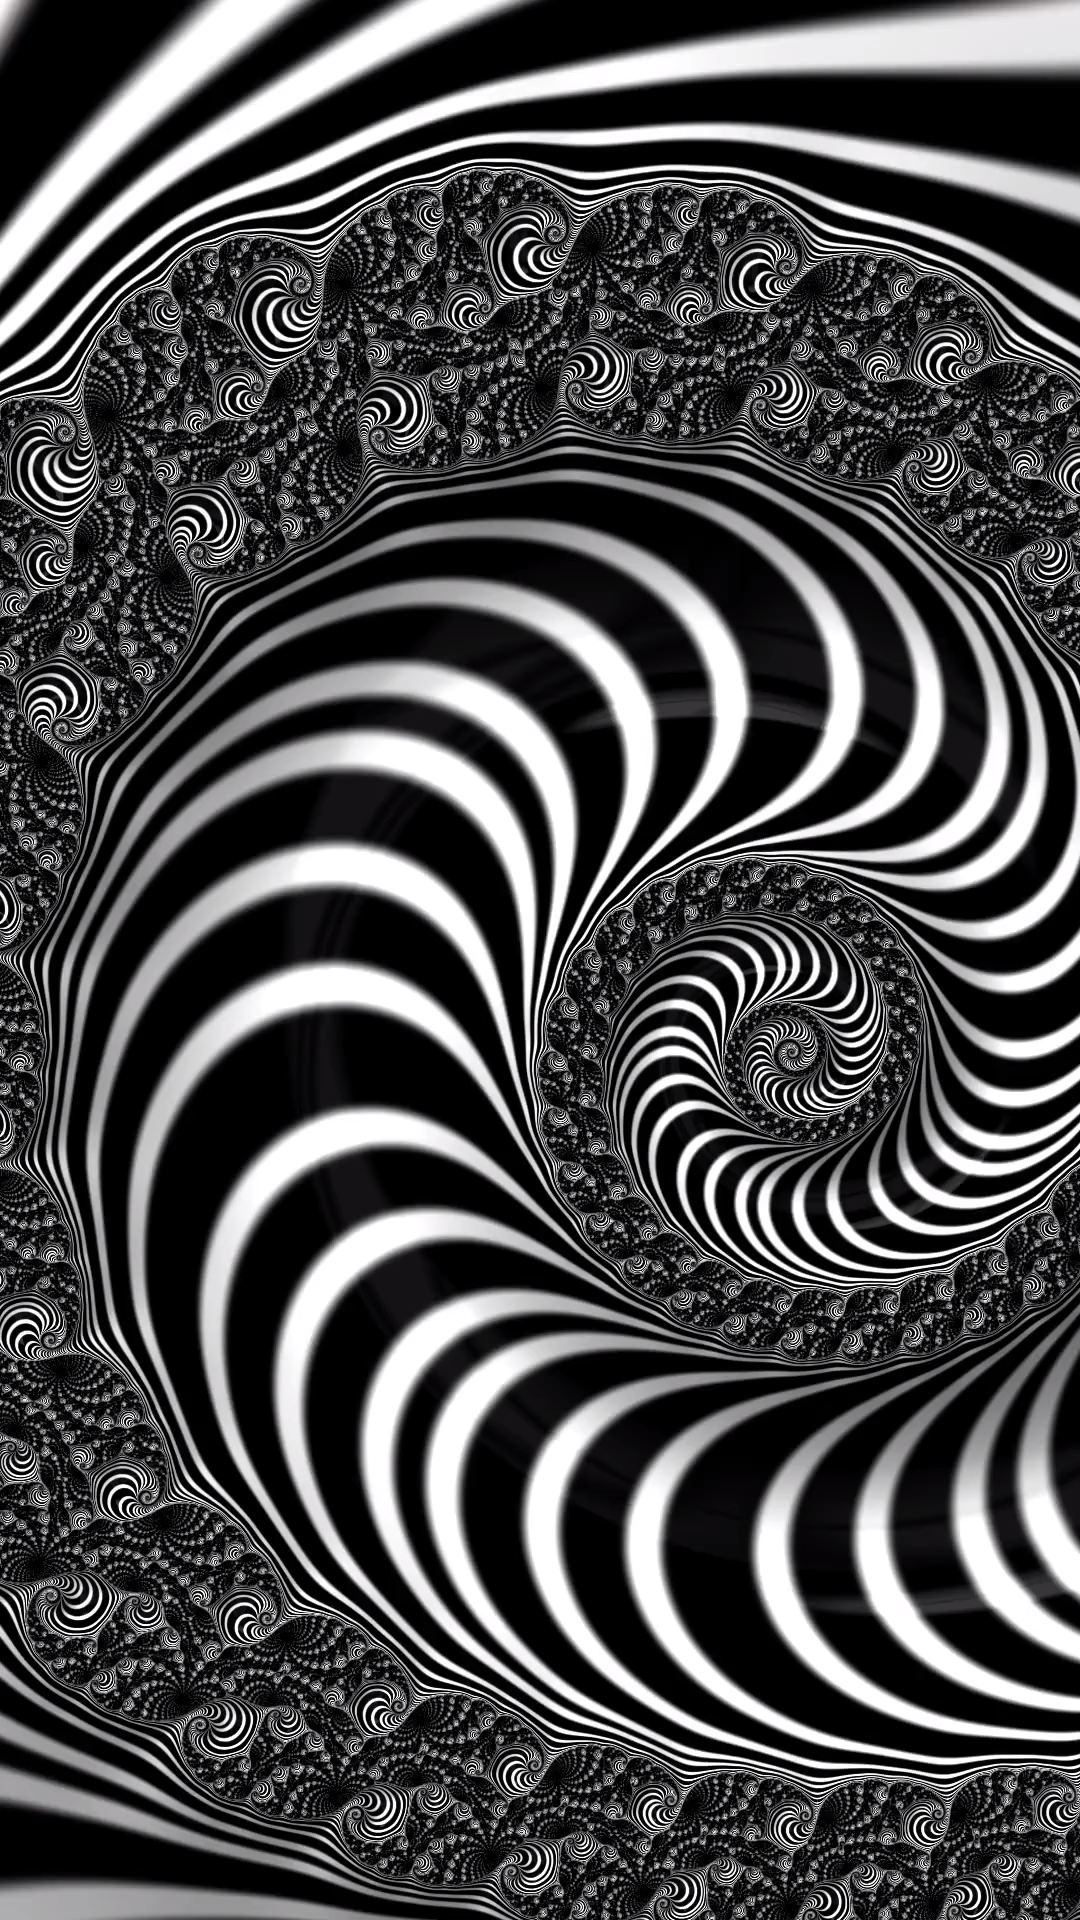 Fractal Op Art, black and white Spiral. Prints for sale (canvas, metal, acrylic), tap/click through and get inspired! #fractalart #spiral #wallart